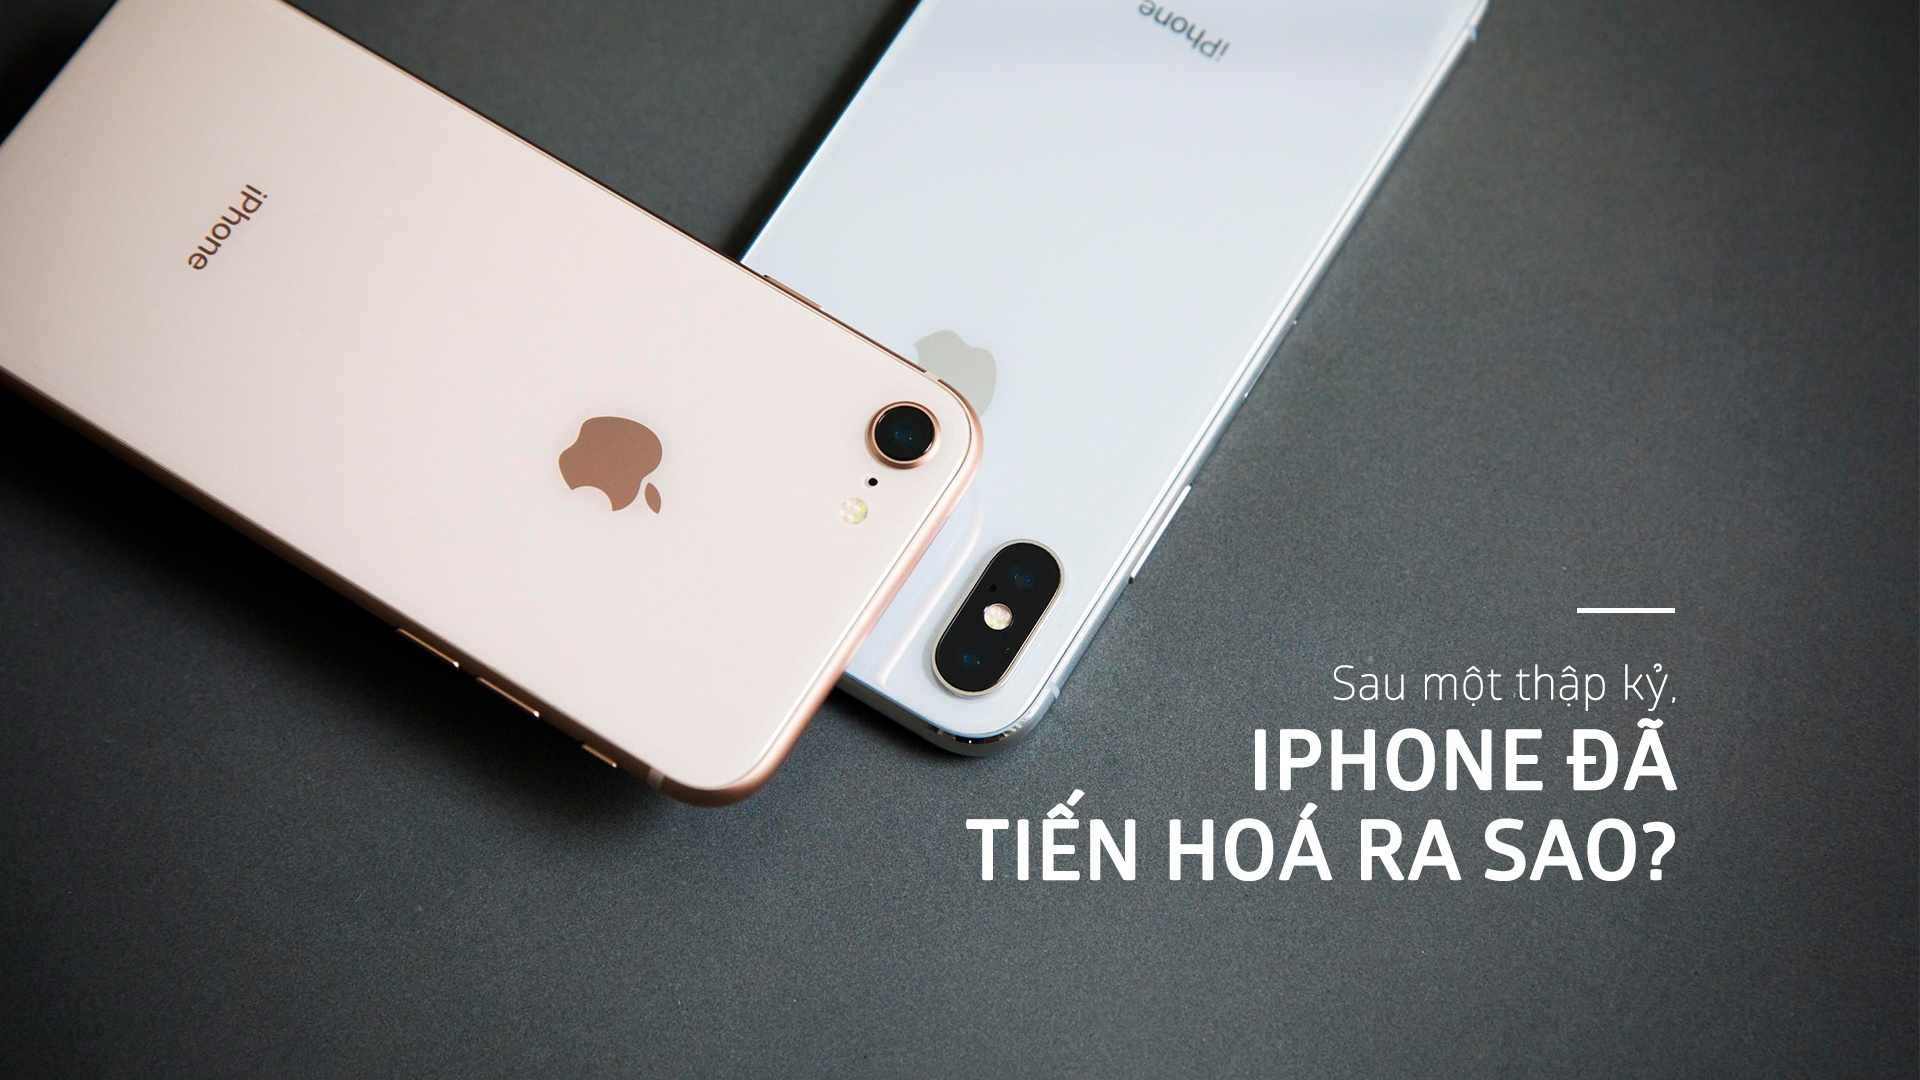 Cac the he iPhone anh 1